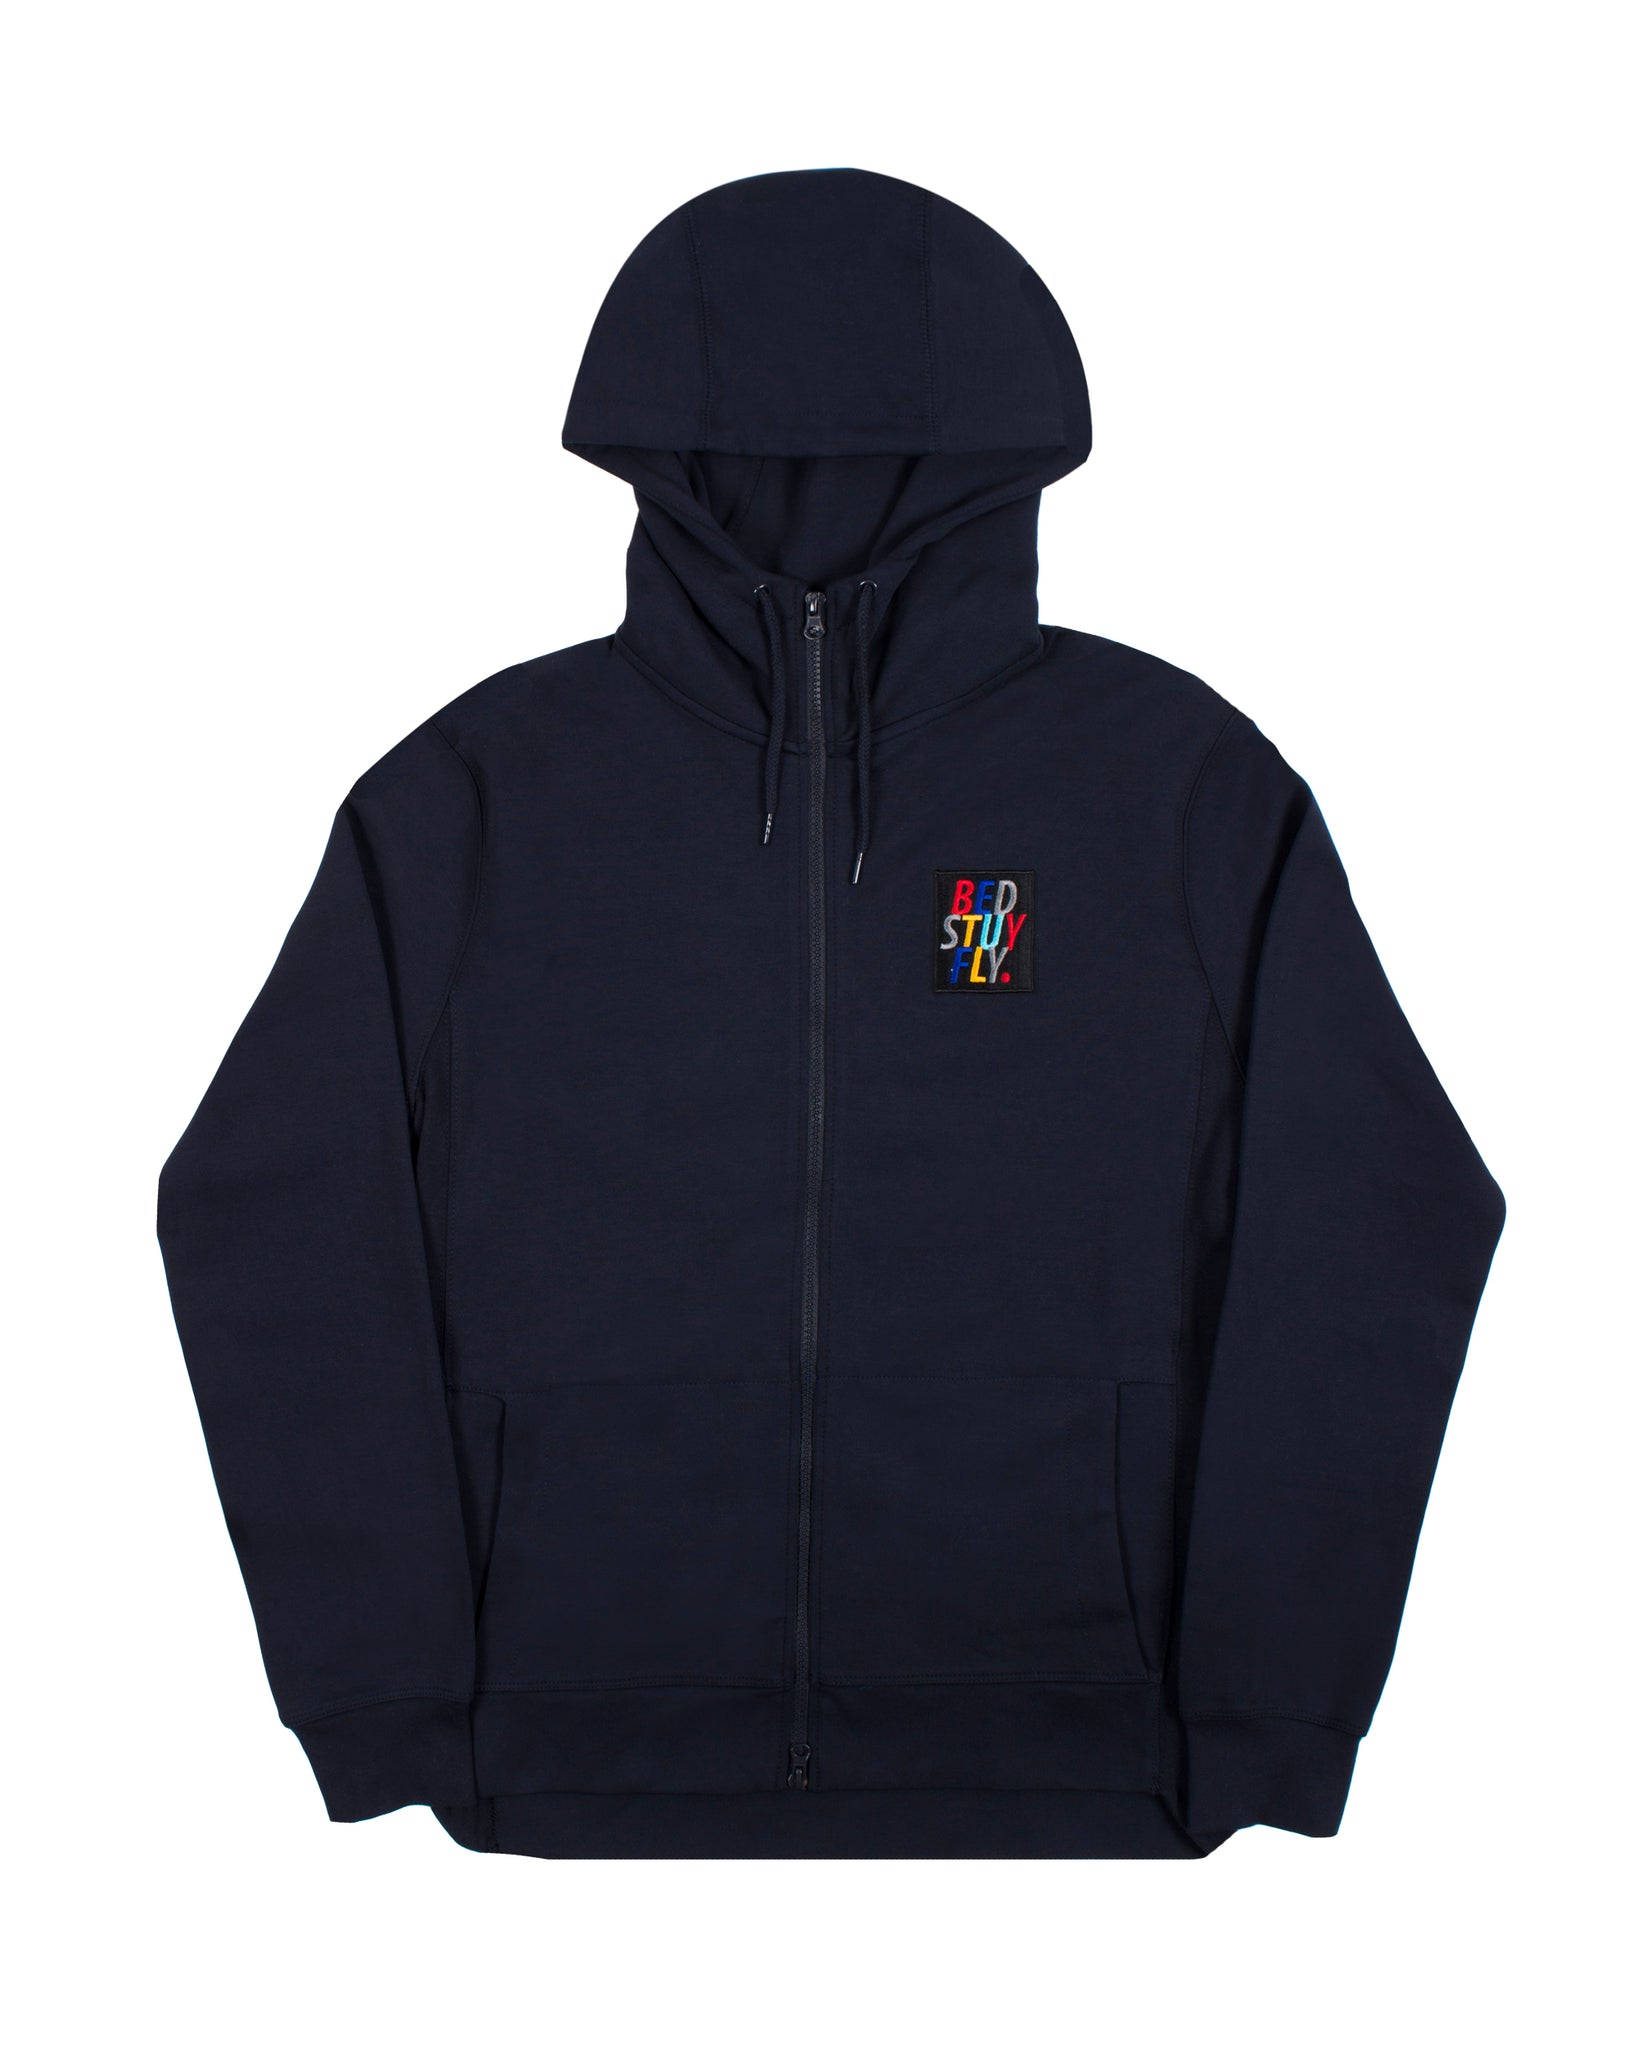 Performance Tech Fleece II Hoodies (Navy)